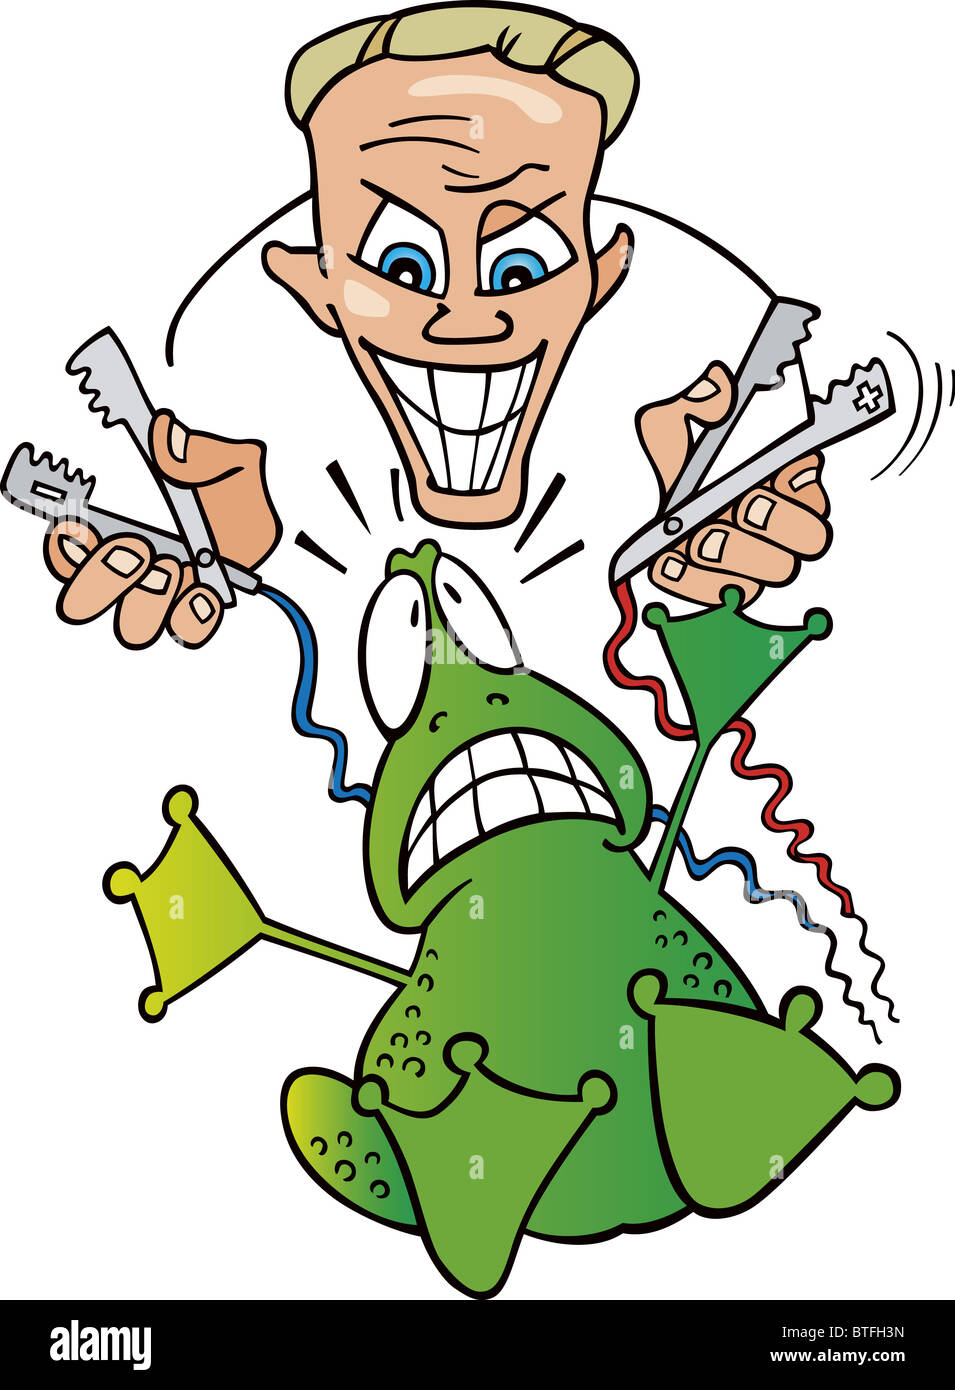 Illustration of crazy scientist and frightened frog Stock Photo